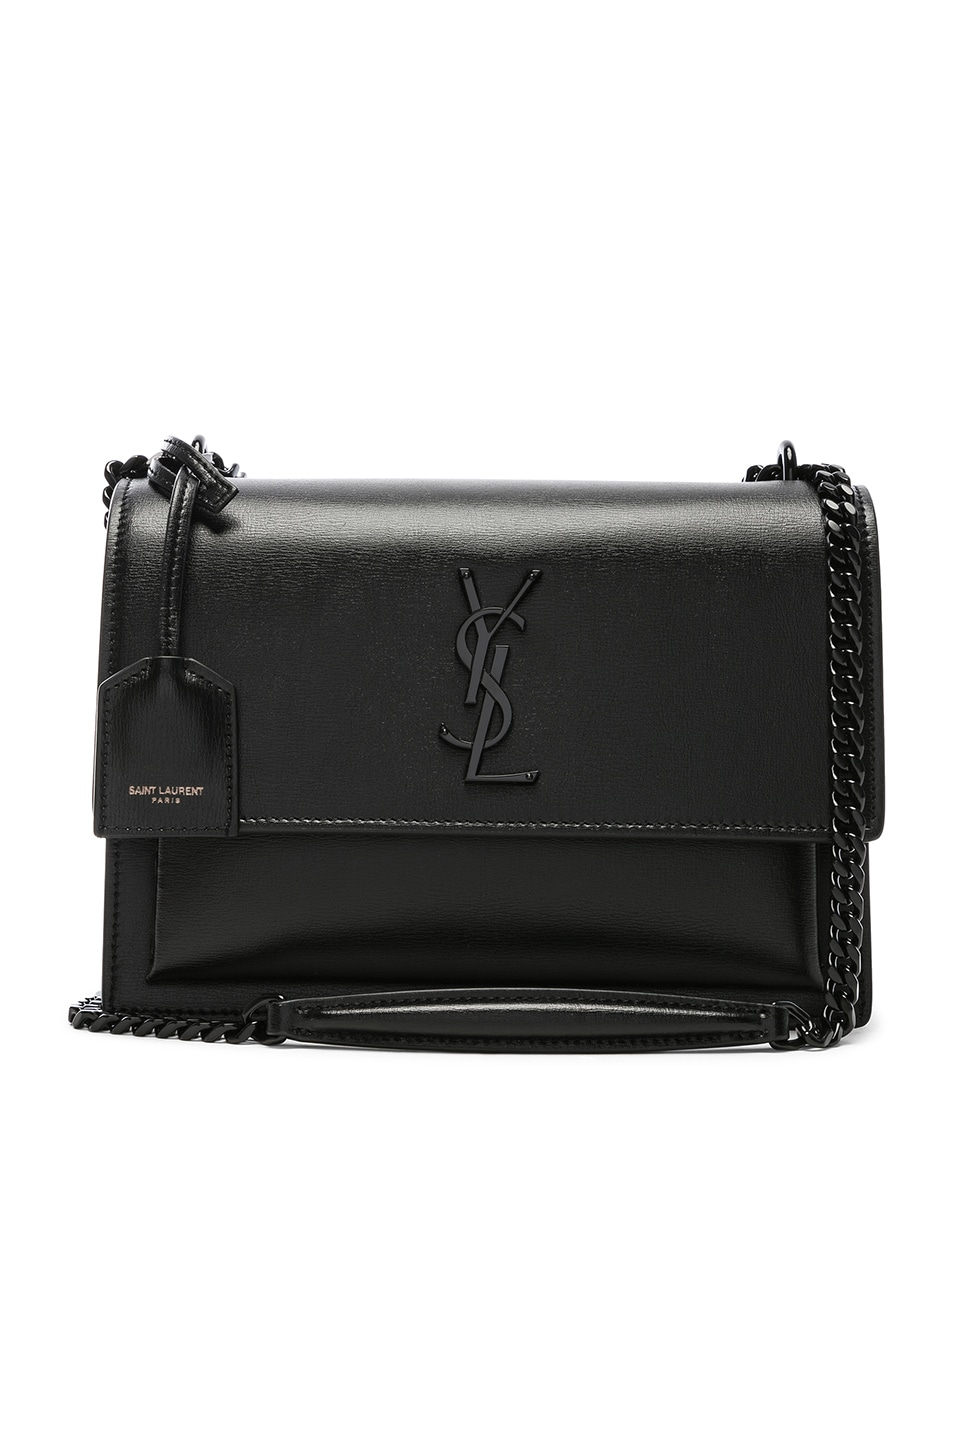 Image 1 of Saint Laurent Monogramme Sunset Shoulder Bag in Black